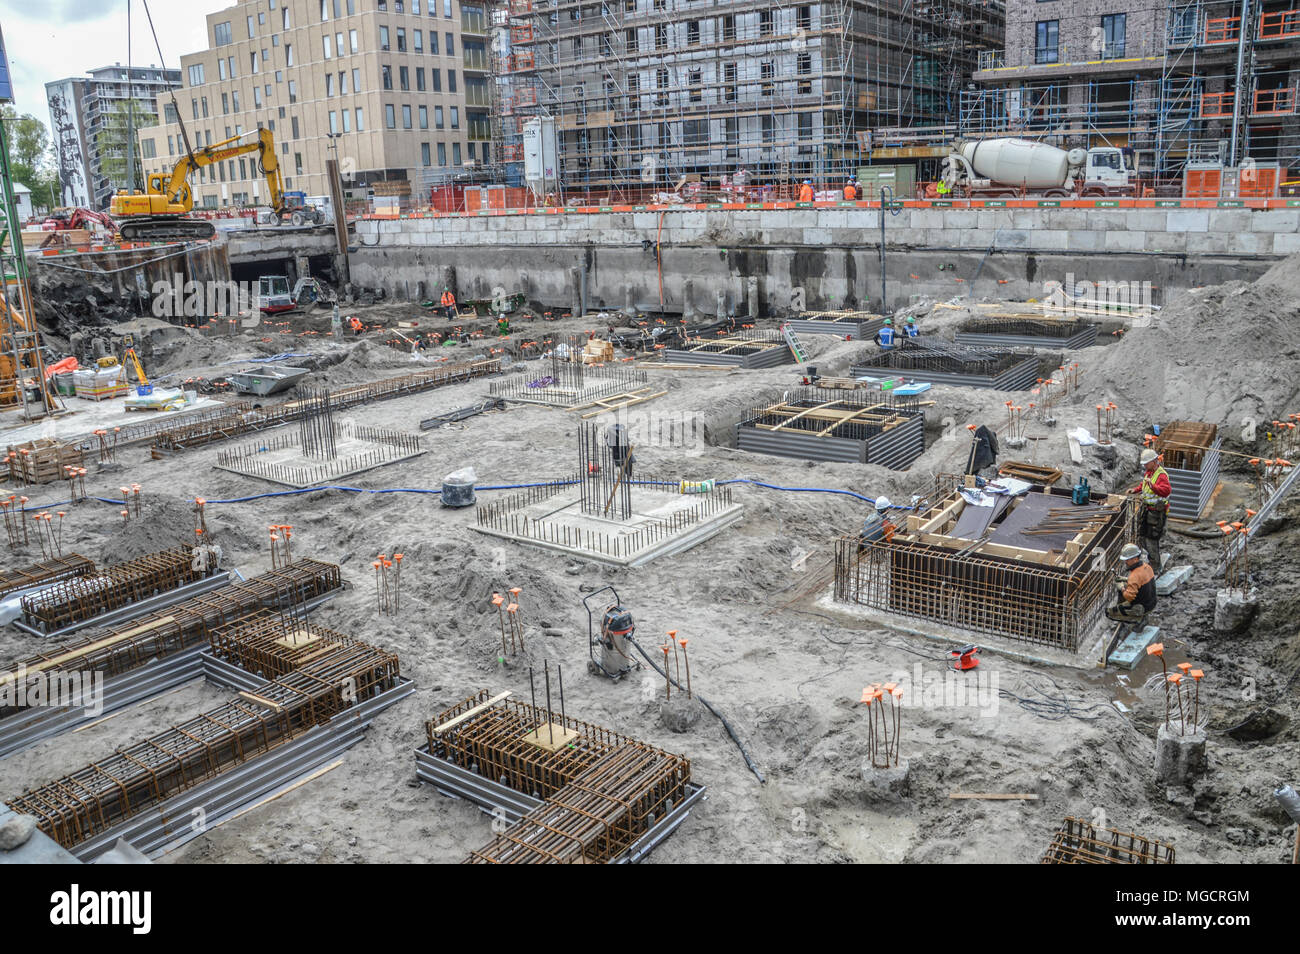 Construction Site At Amsterdam The Netherlands - Stock Image